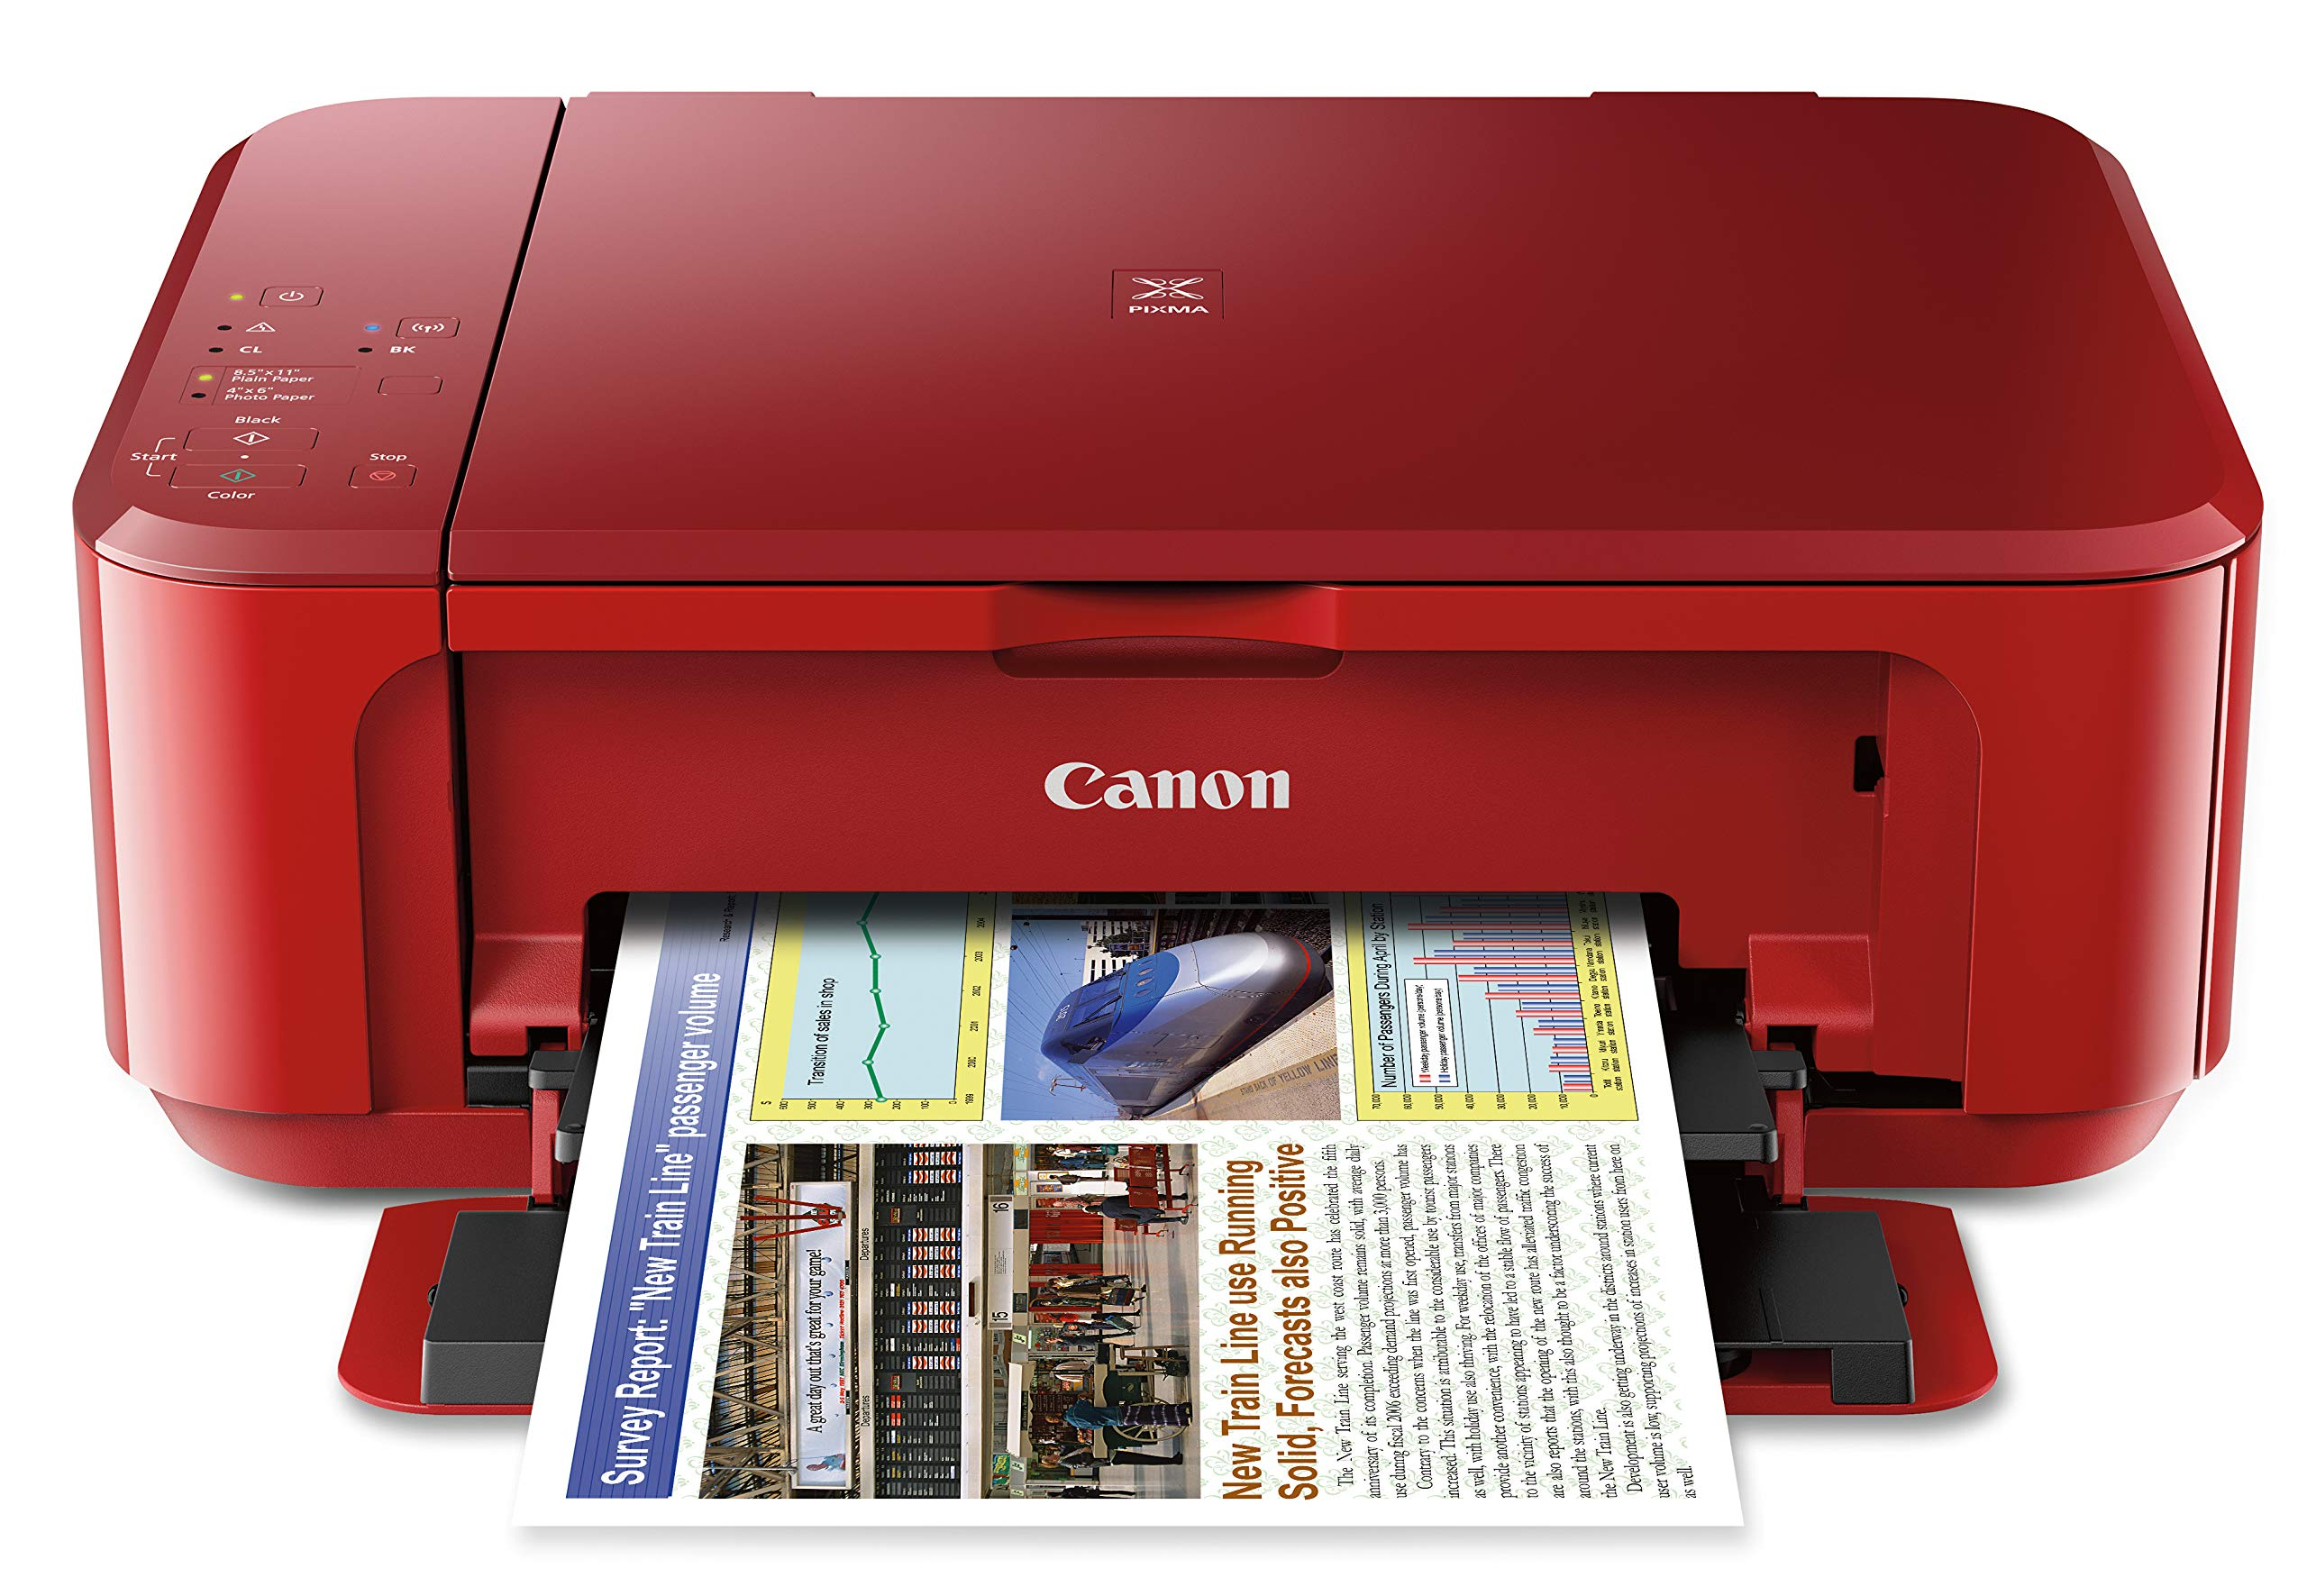 Canon PIXMA MG3620 Wireless All-In-One Color Inkjet Printer with Mobile and Tablet Printing, Red